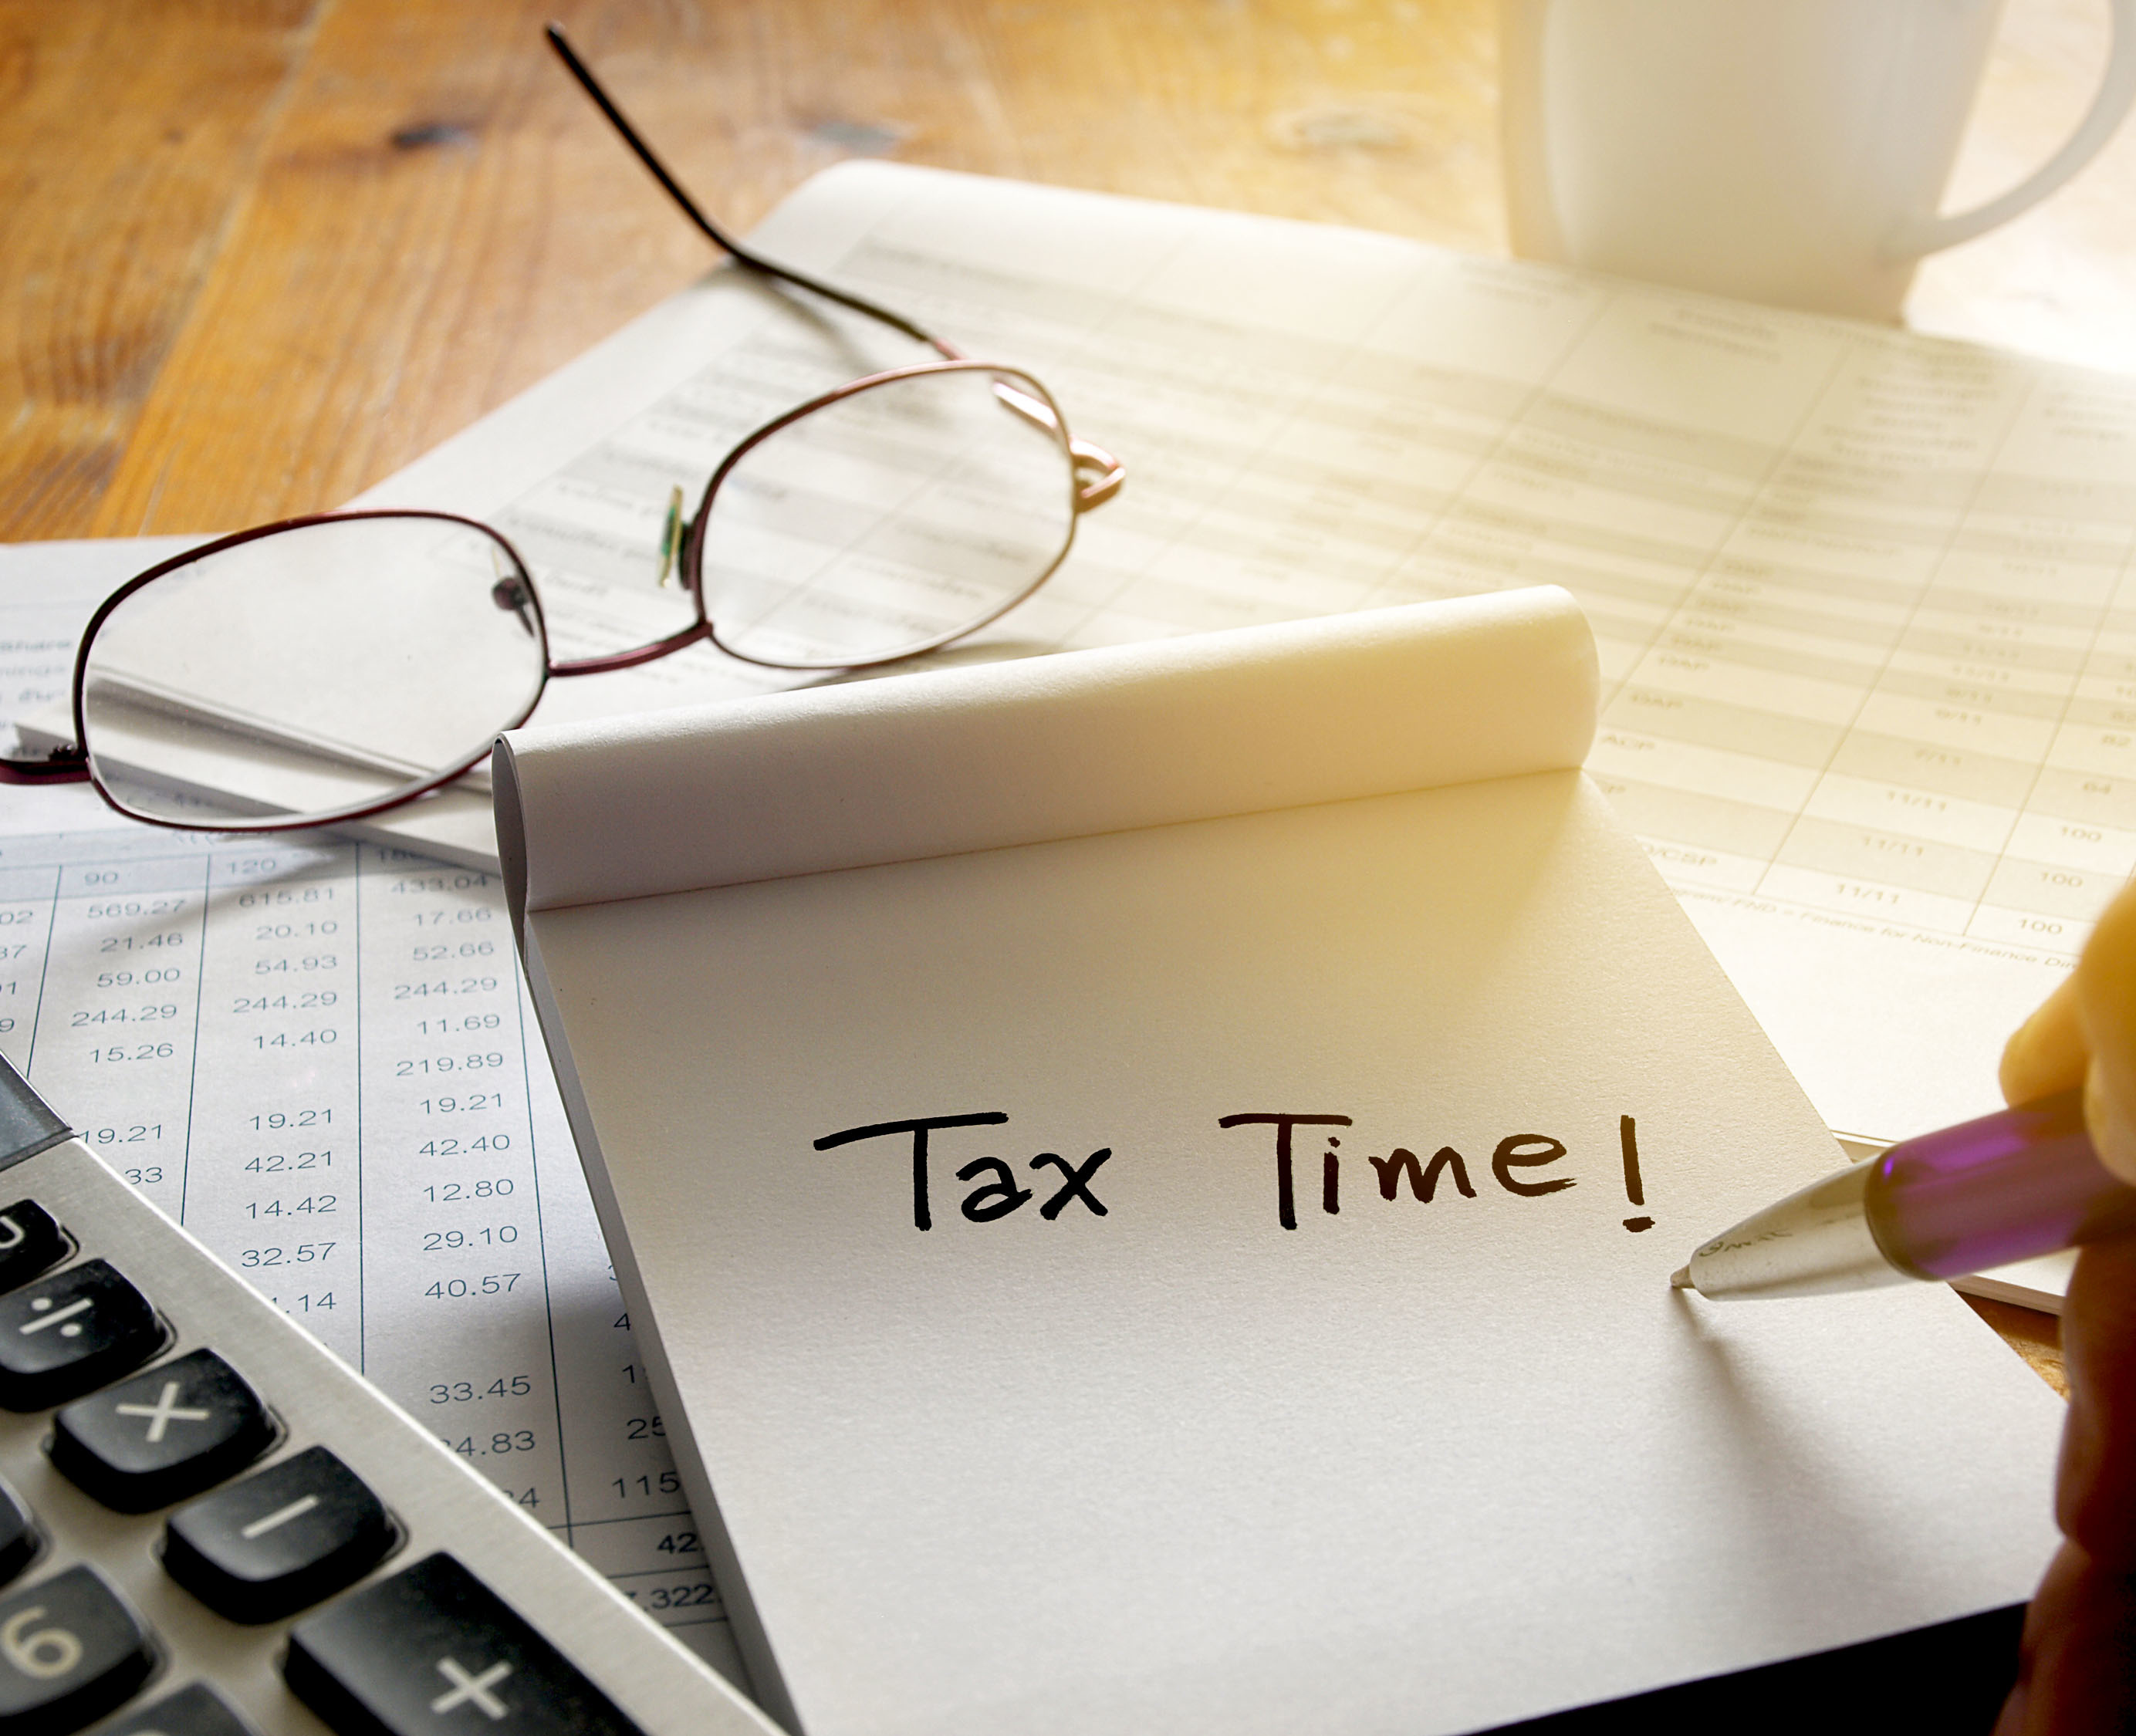 ATO Tax Time - 30 June Is Fast Approaching Deductions Checklist